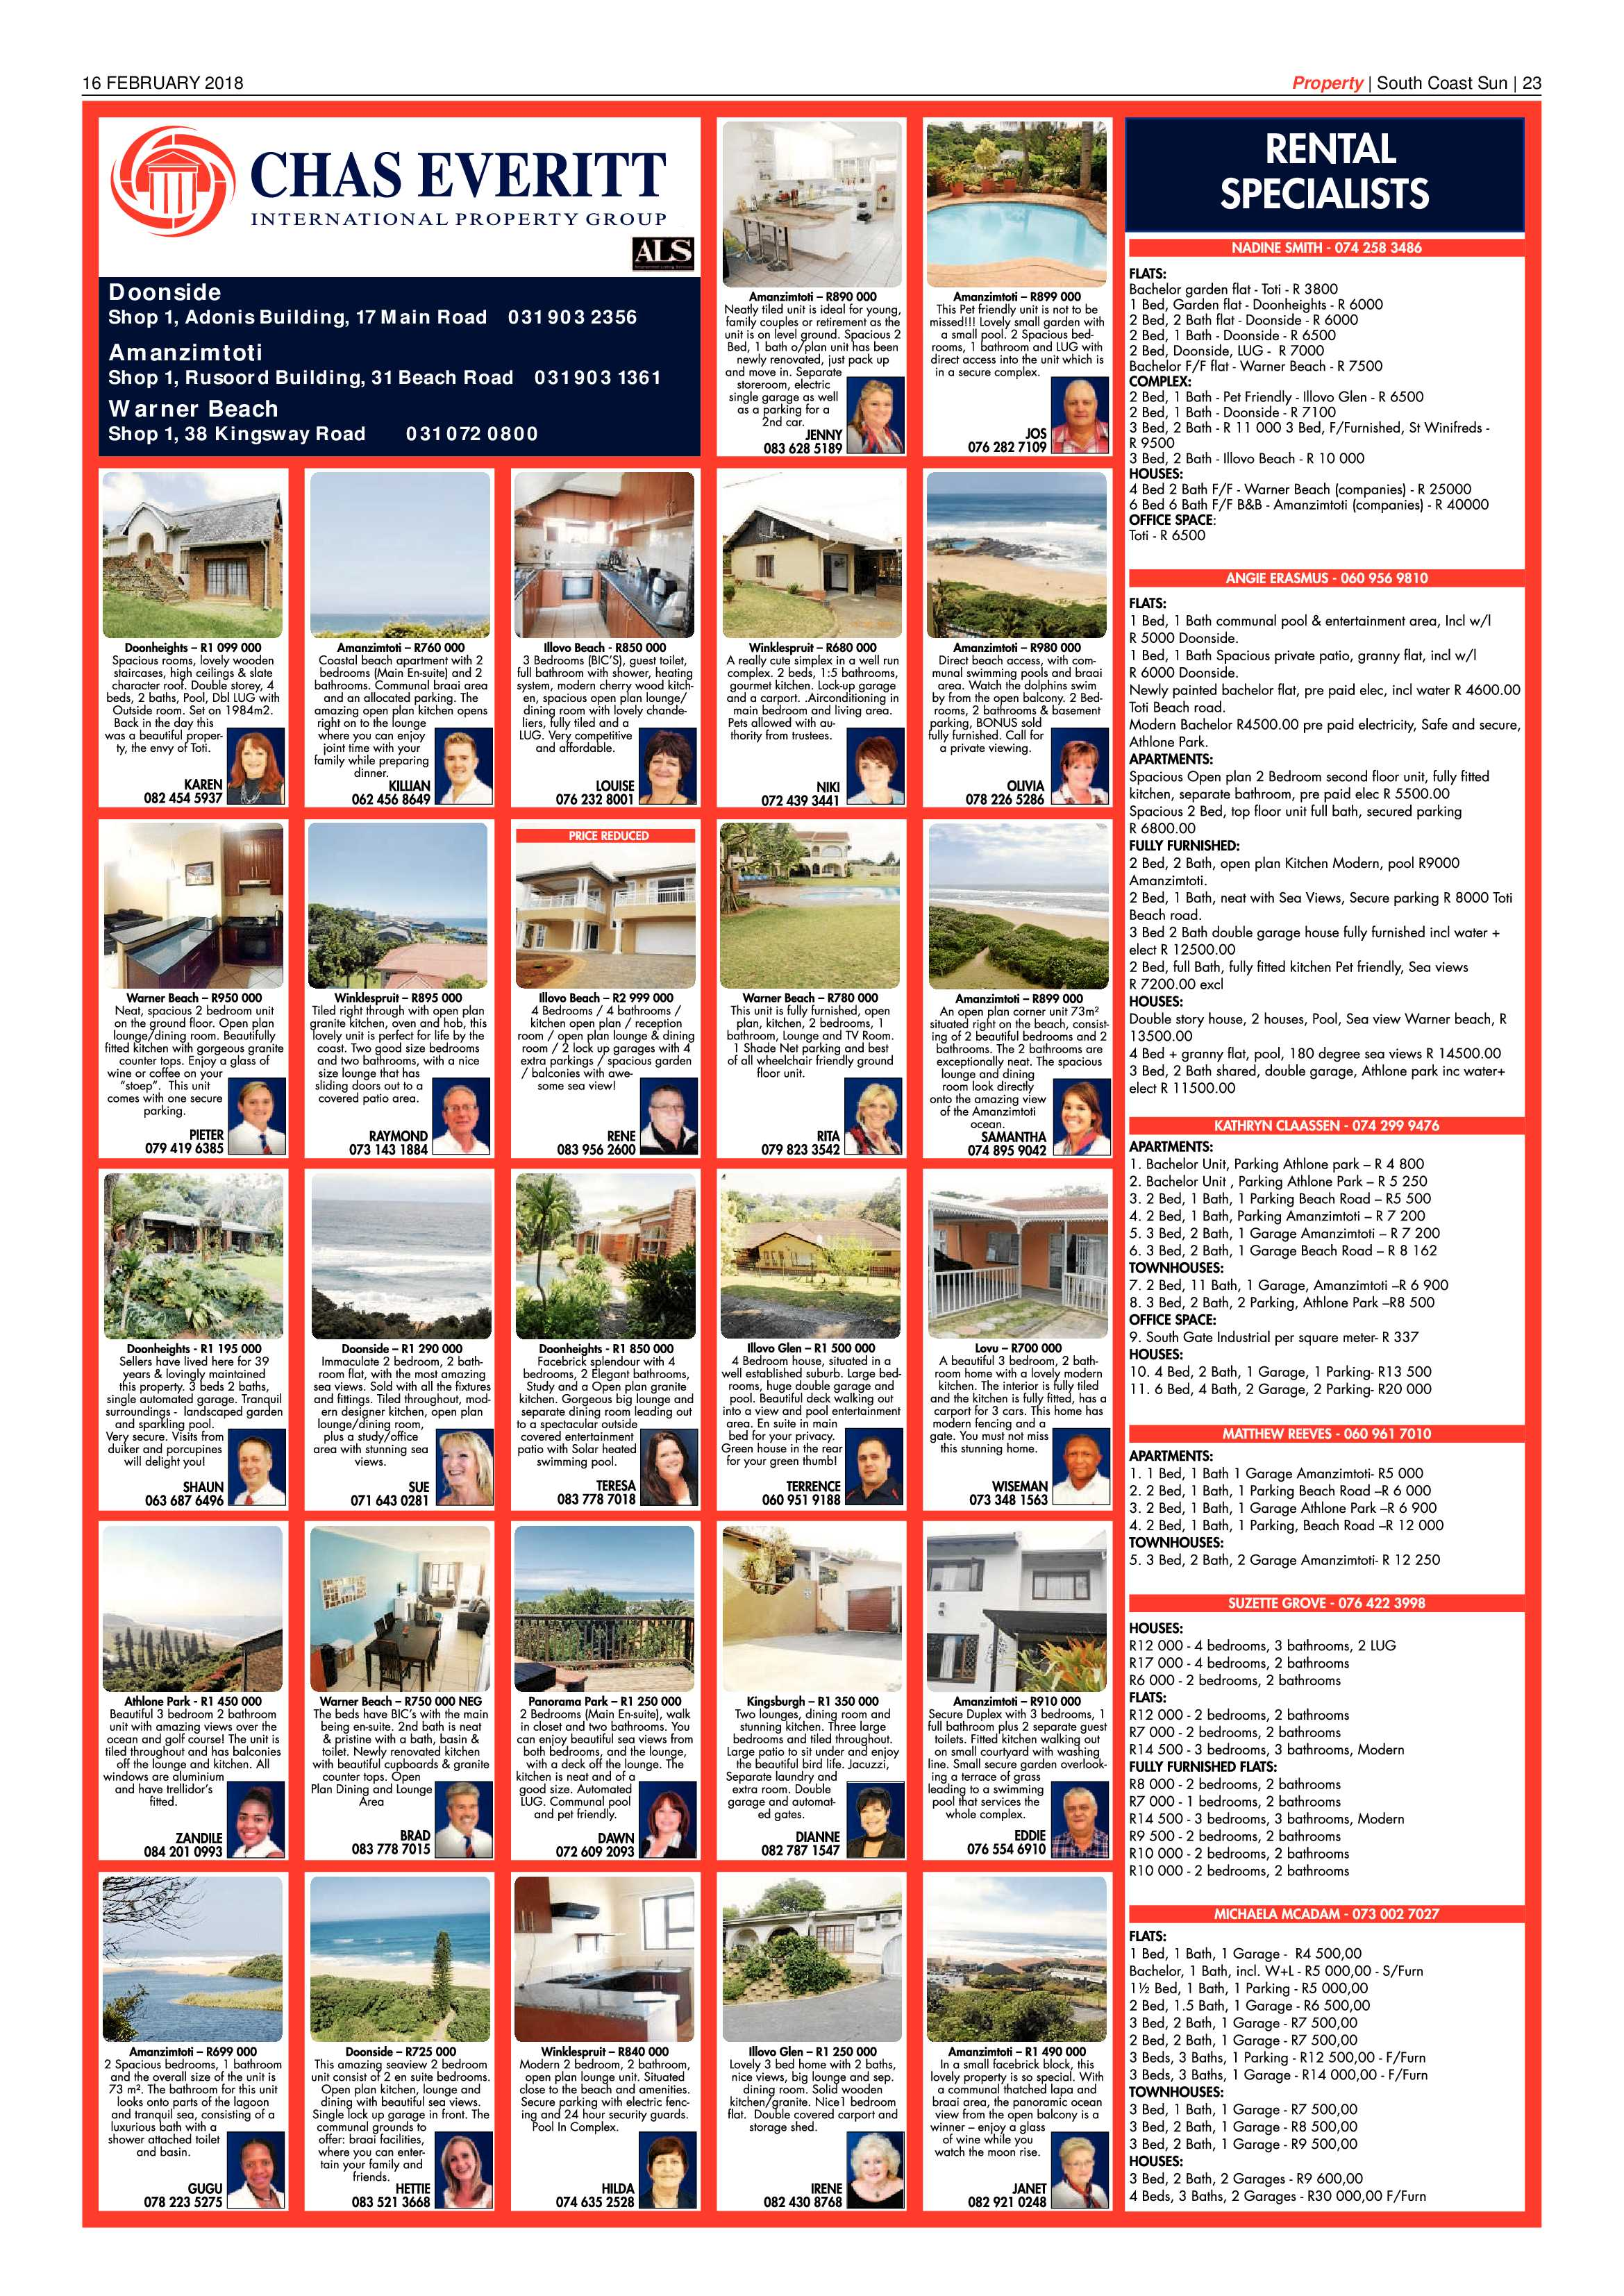 16-february-2018-epapers-page-22